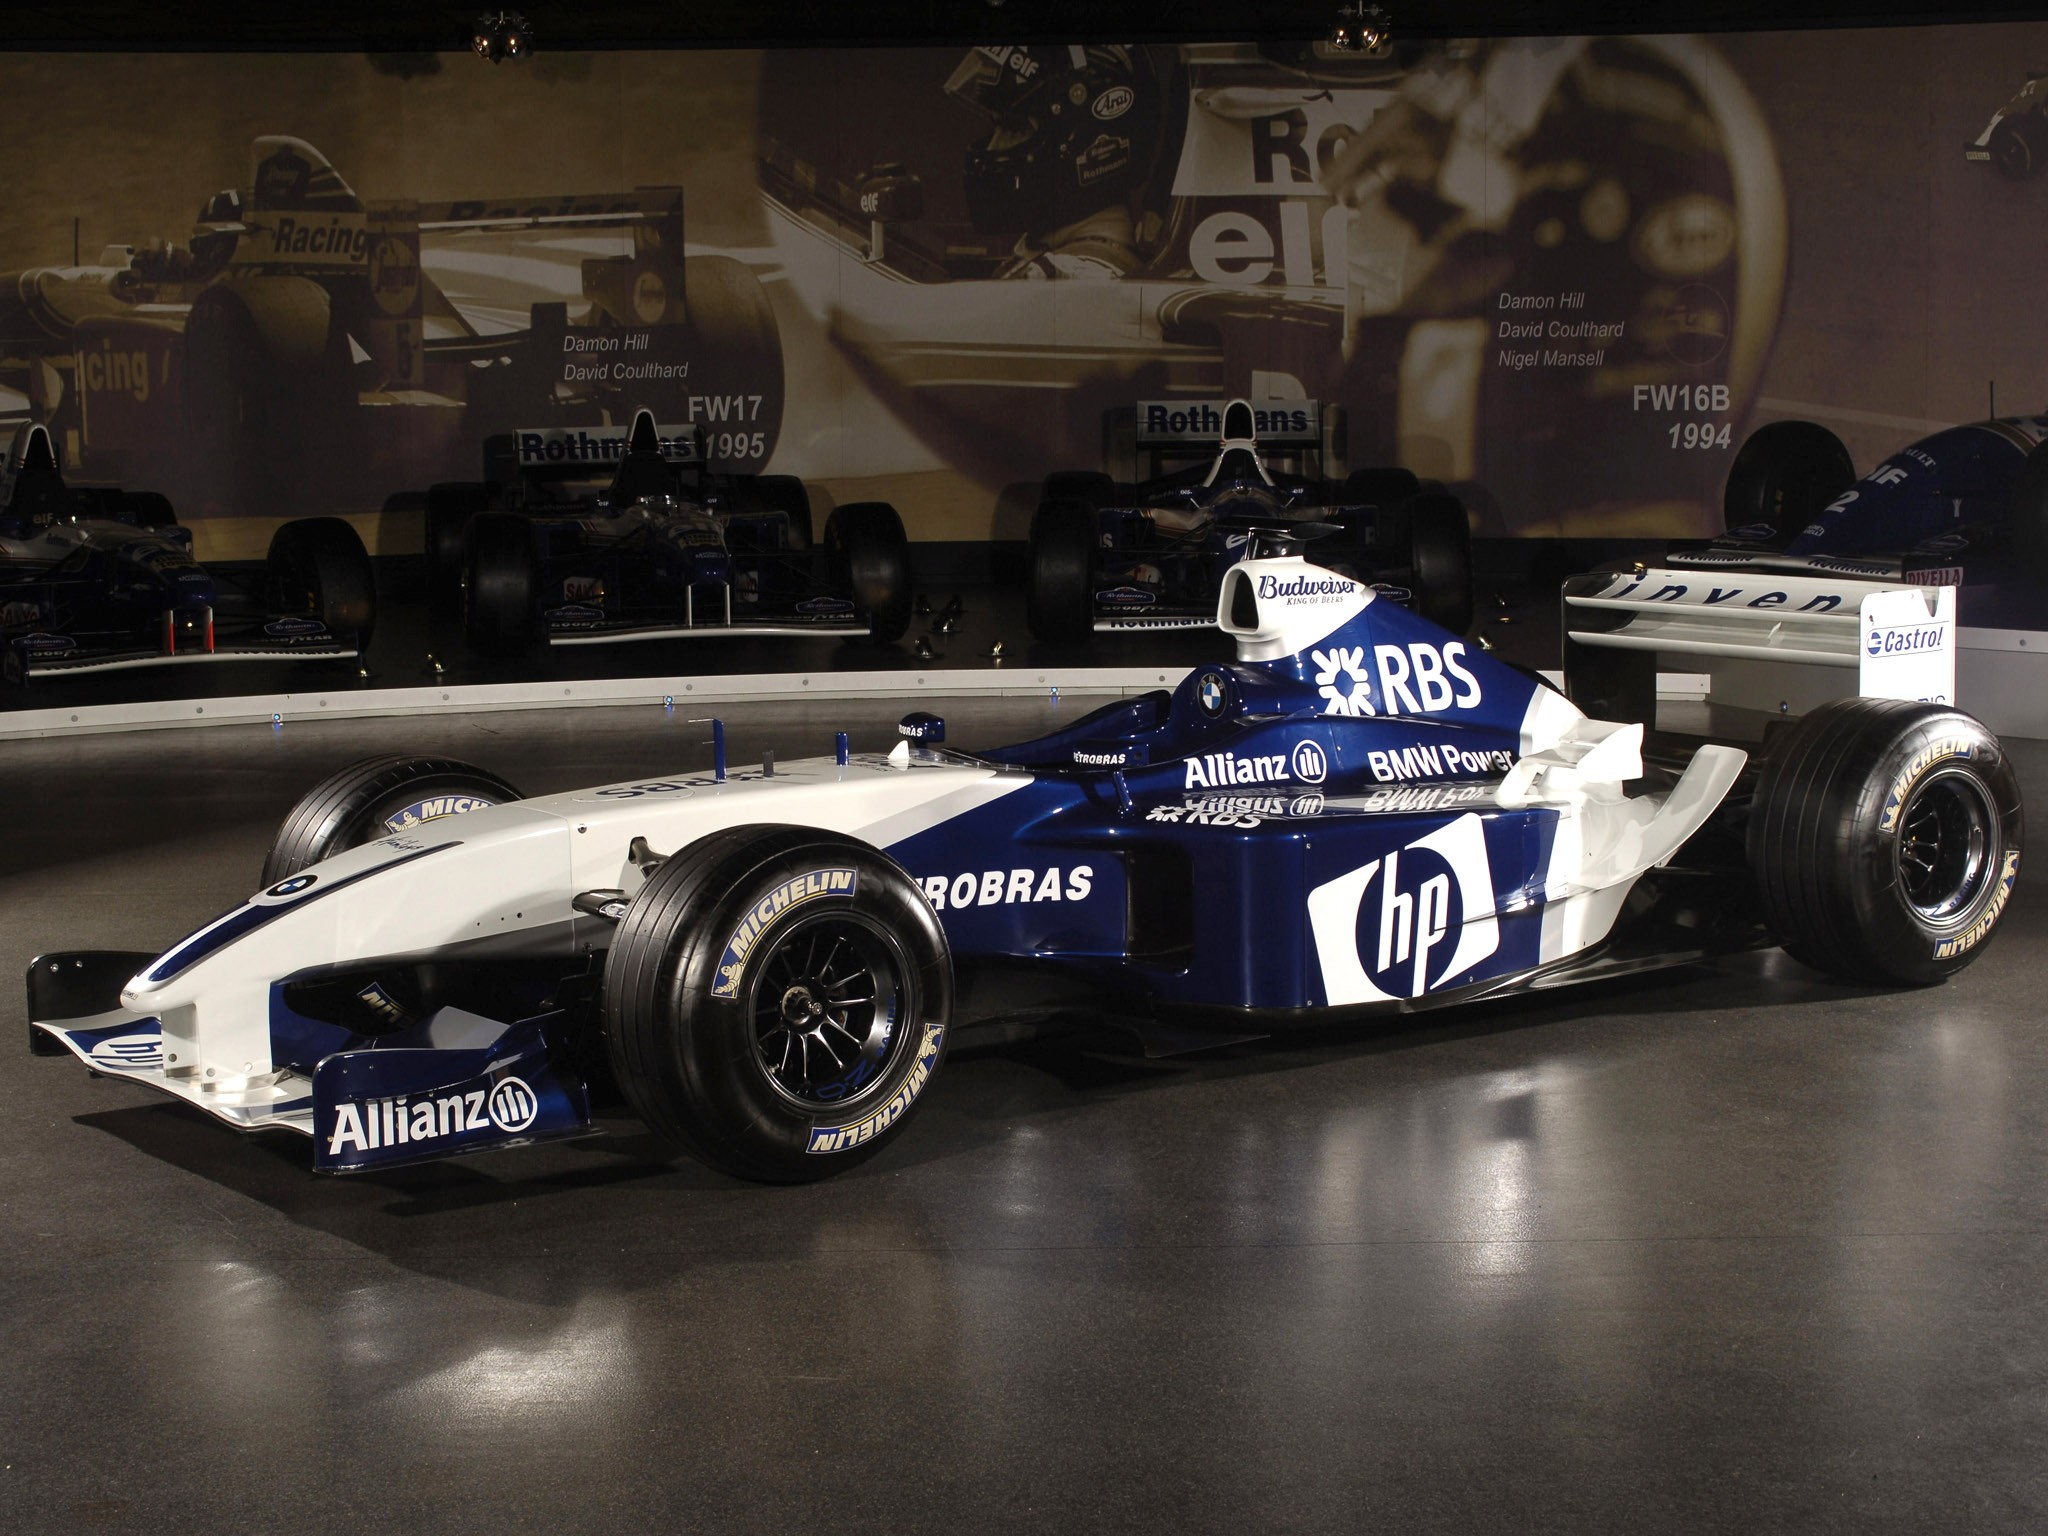 Williams BMW V10 FW25 2003